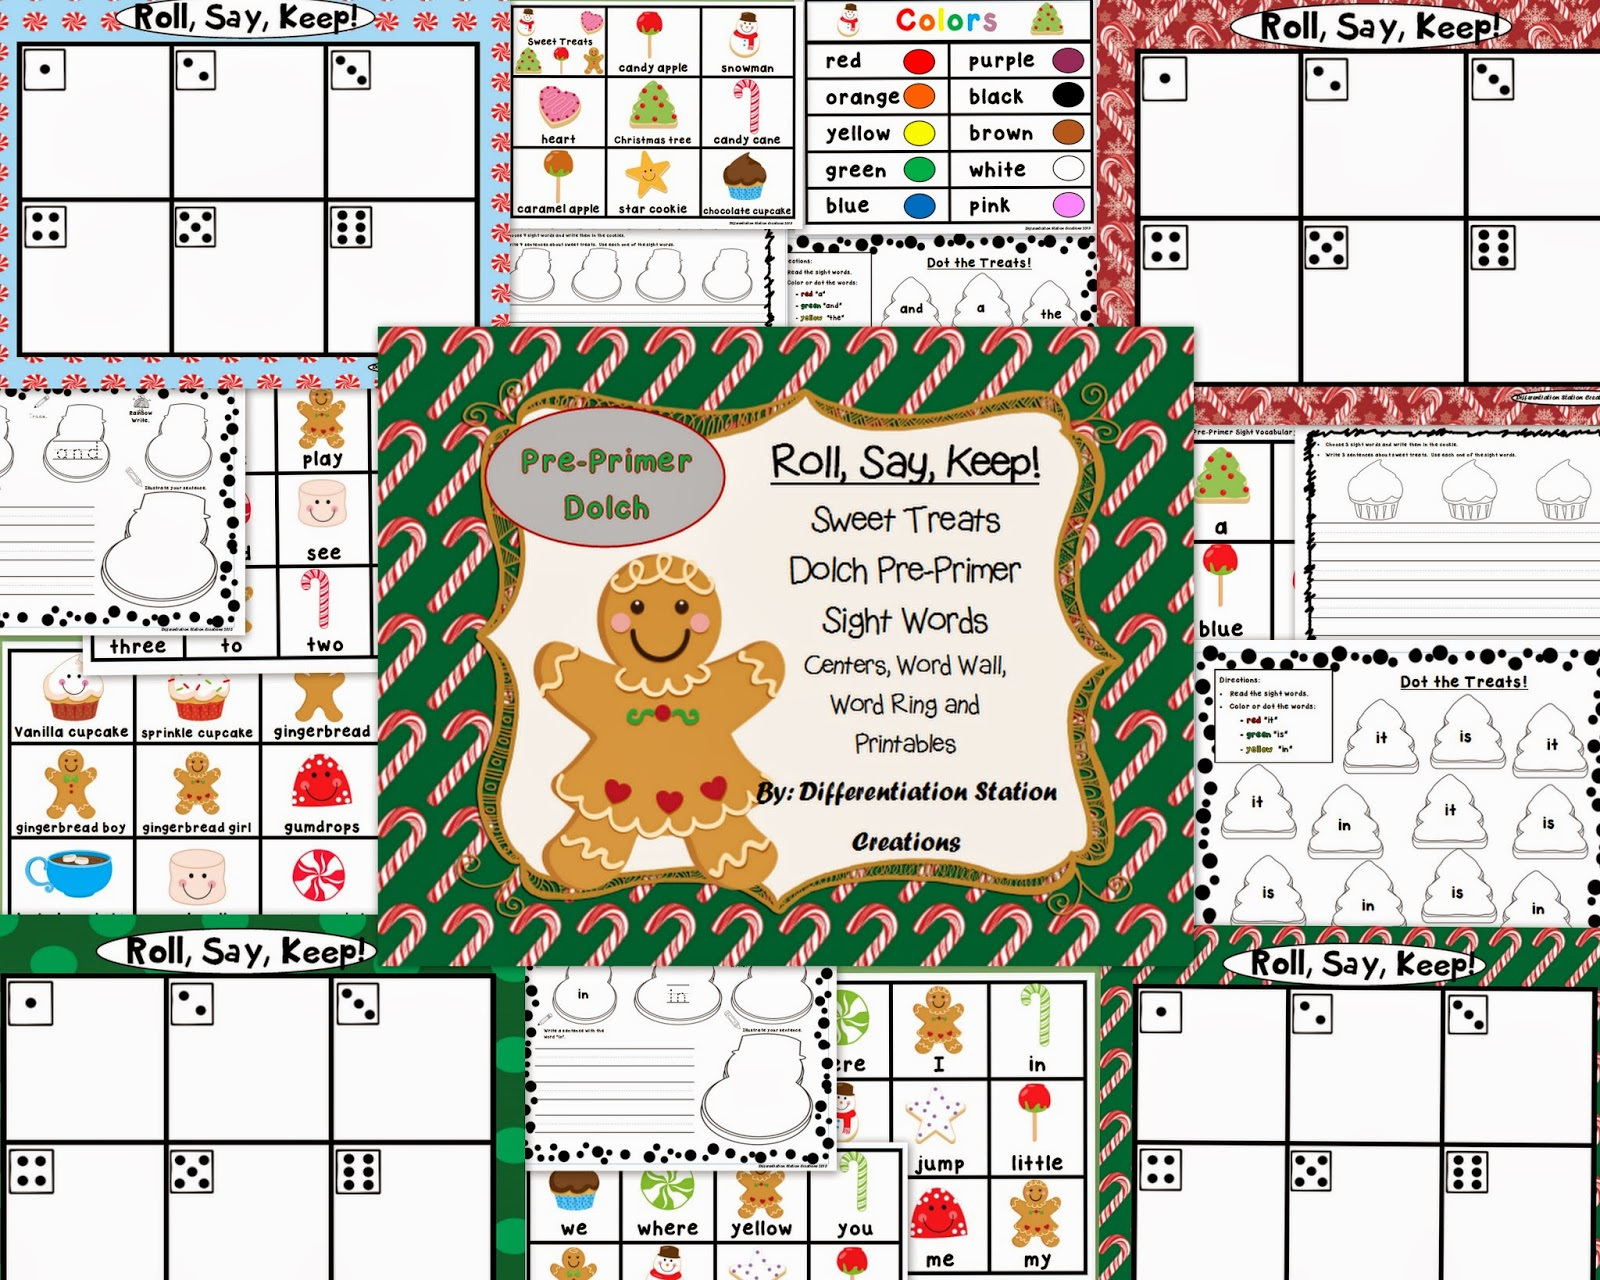 Differentiation Station Creations Christmas In July Sale